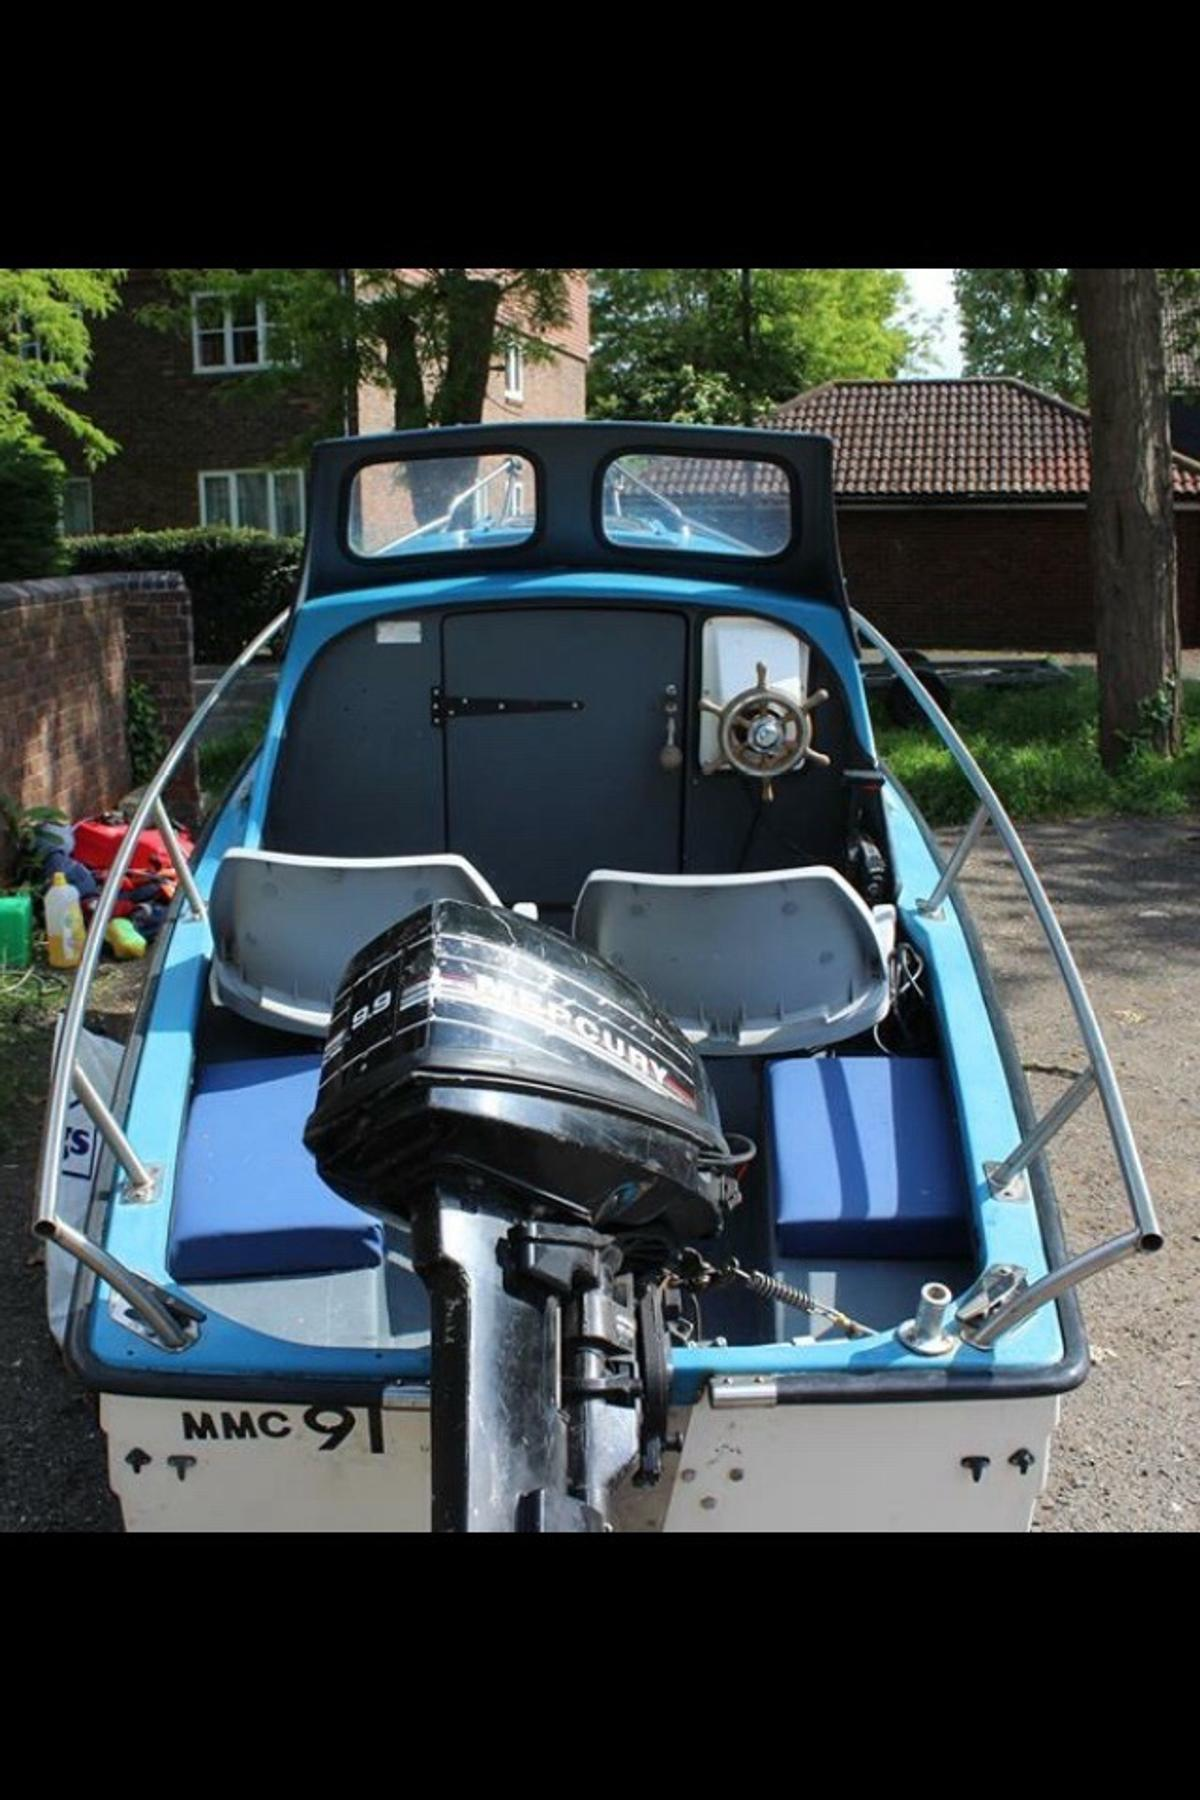 Mayland 14 boat for sale!!! in E6 London for £1,150 00 for